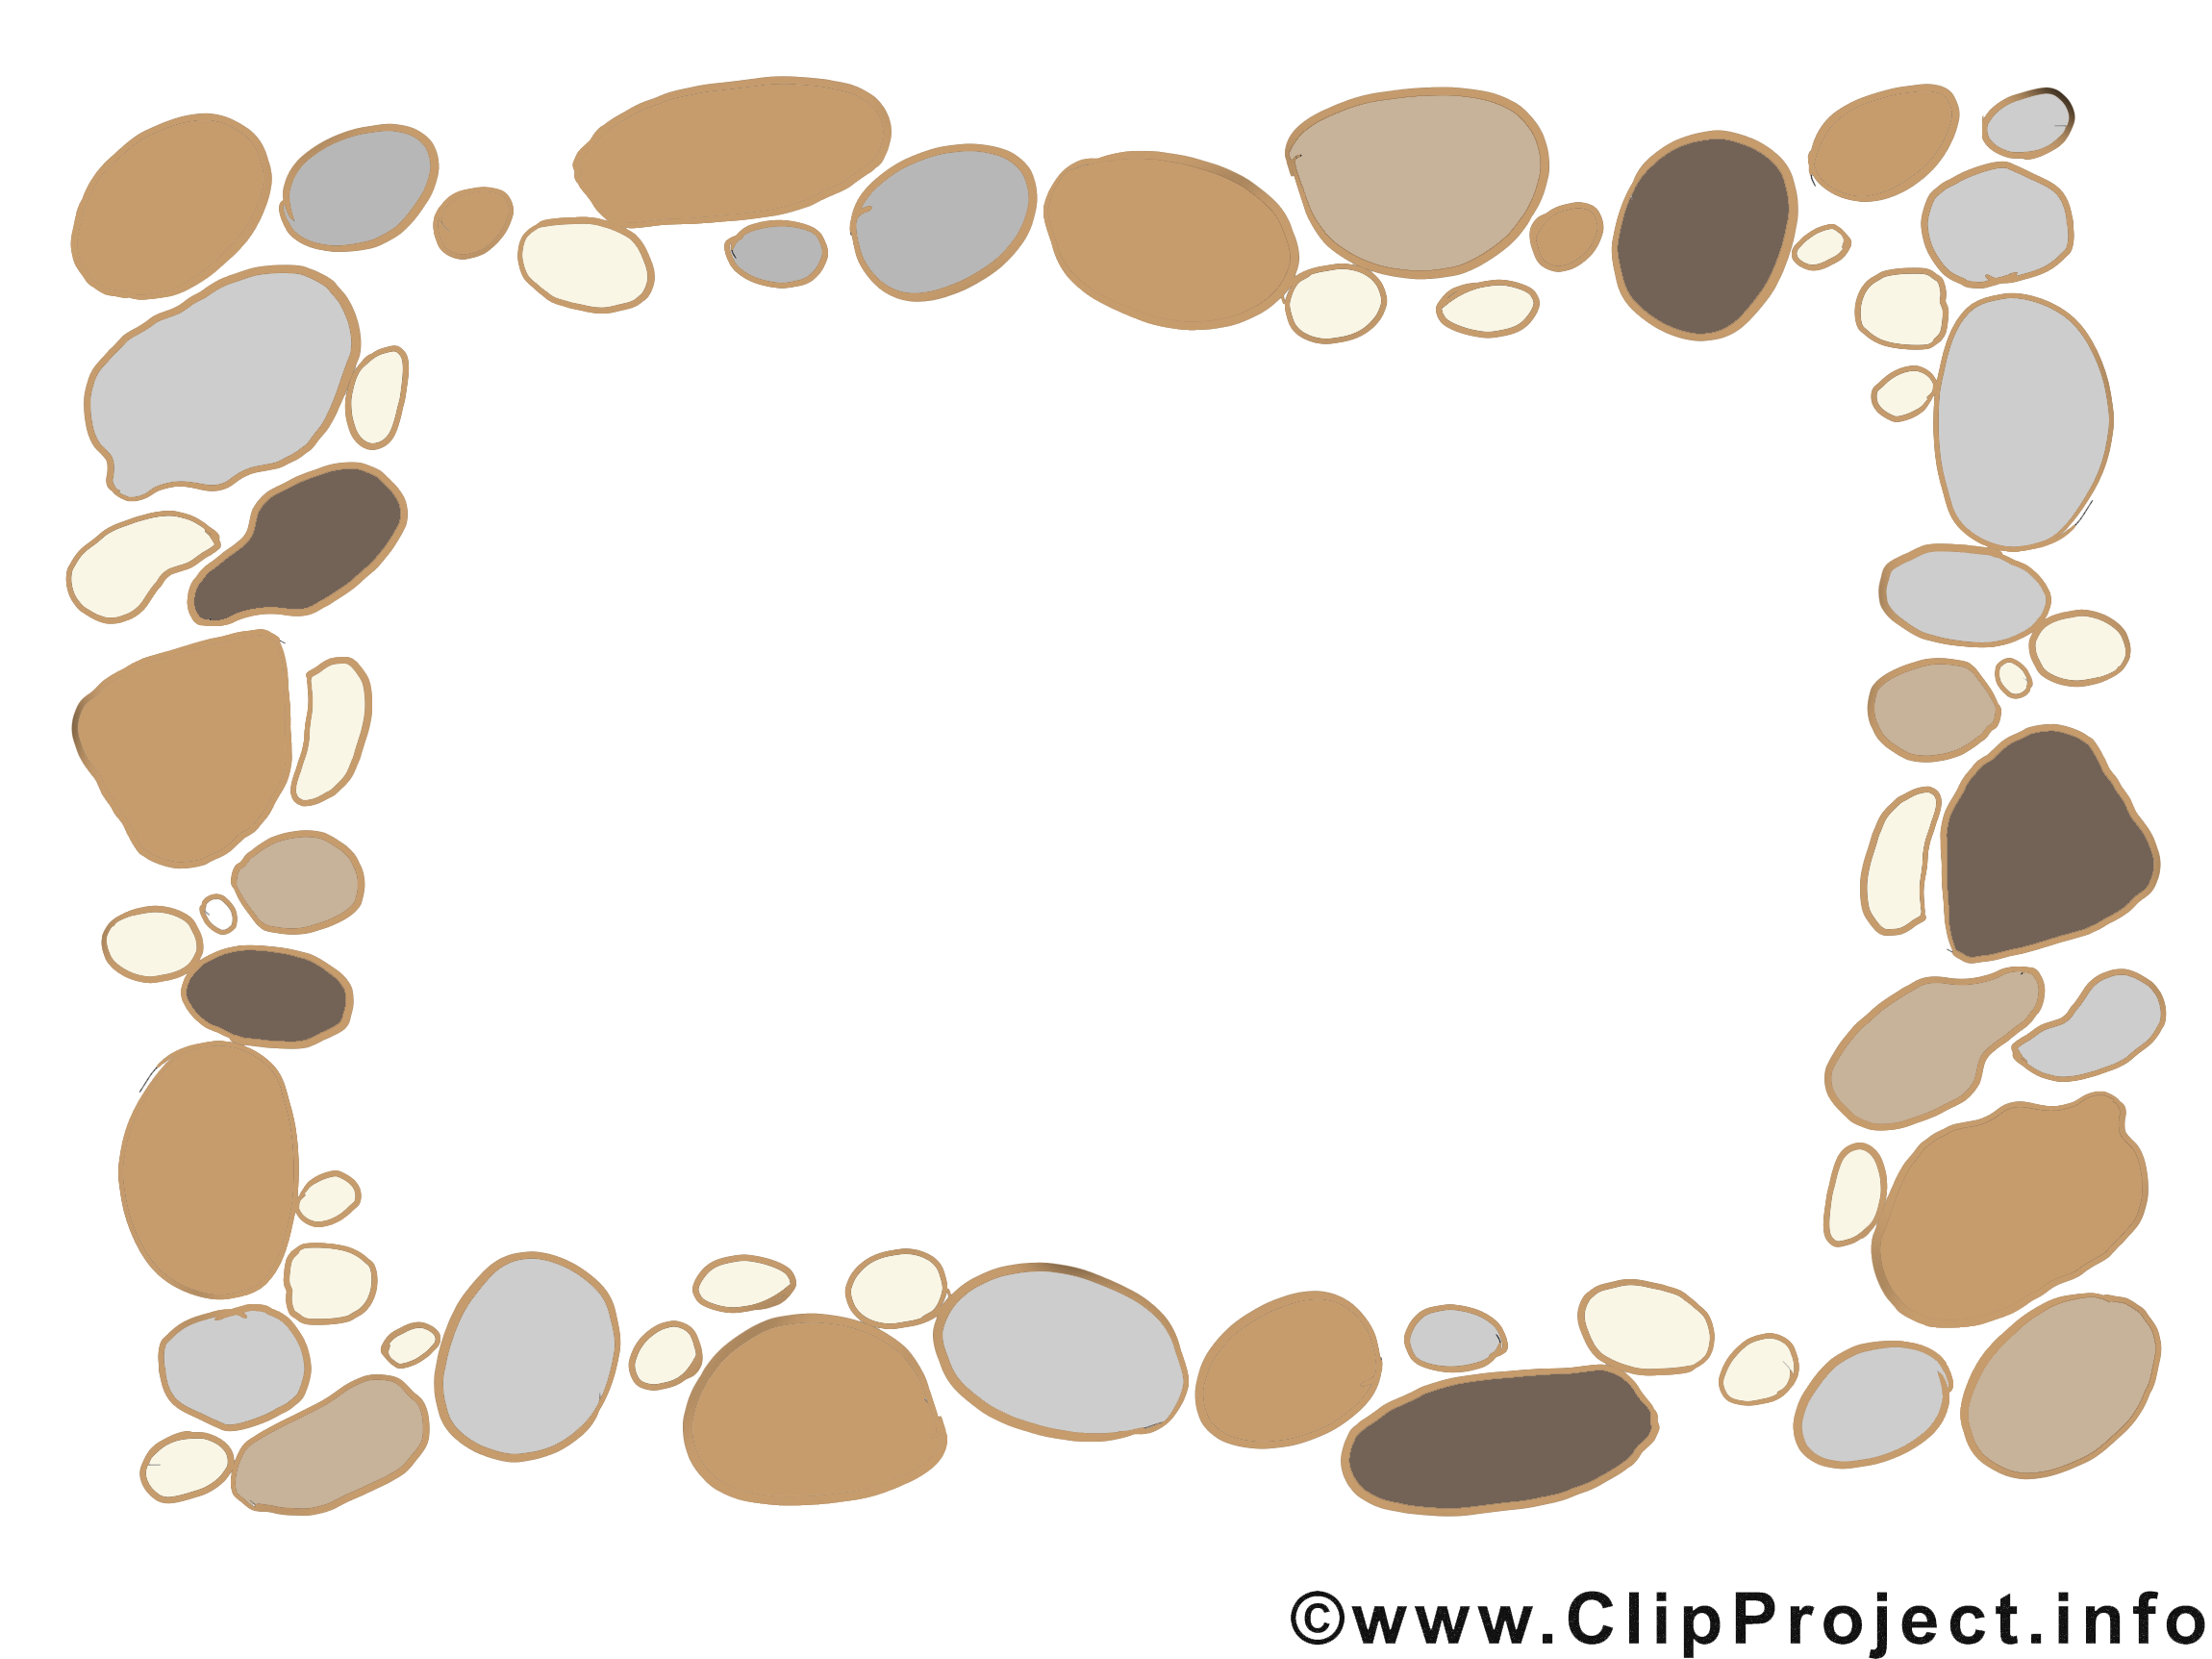 Main clipart gratuit graphic library Clip art gratuit rectangle – Cadre dessin | Bordures de page ... graphic library